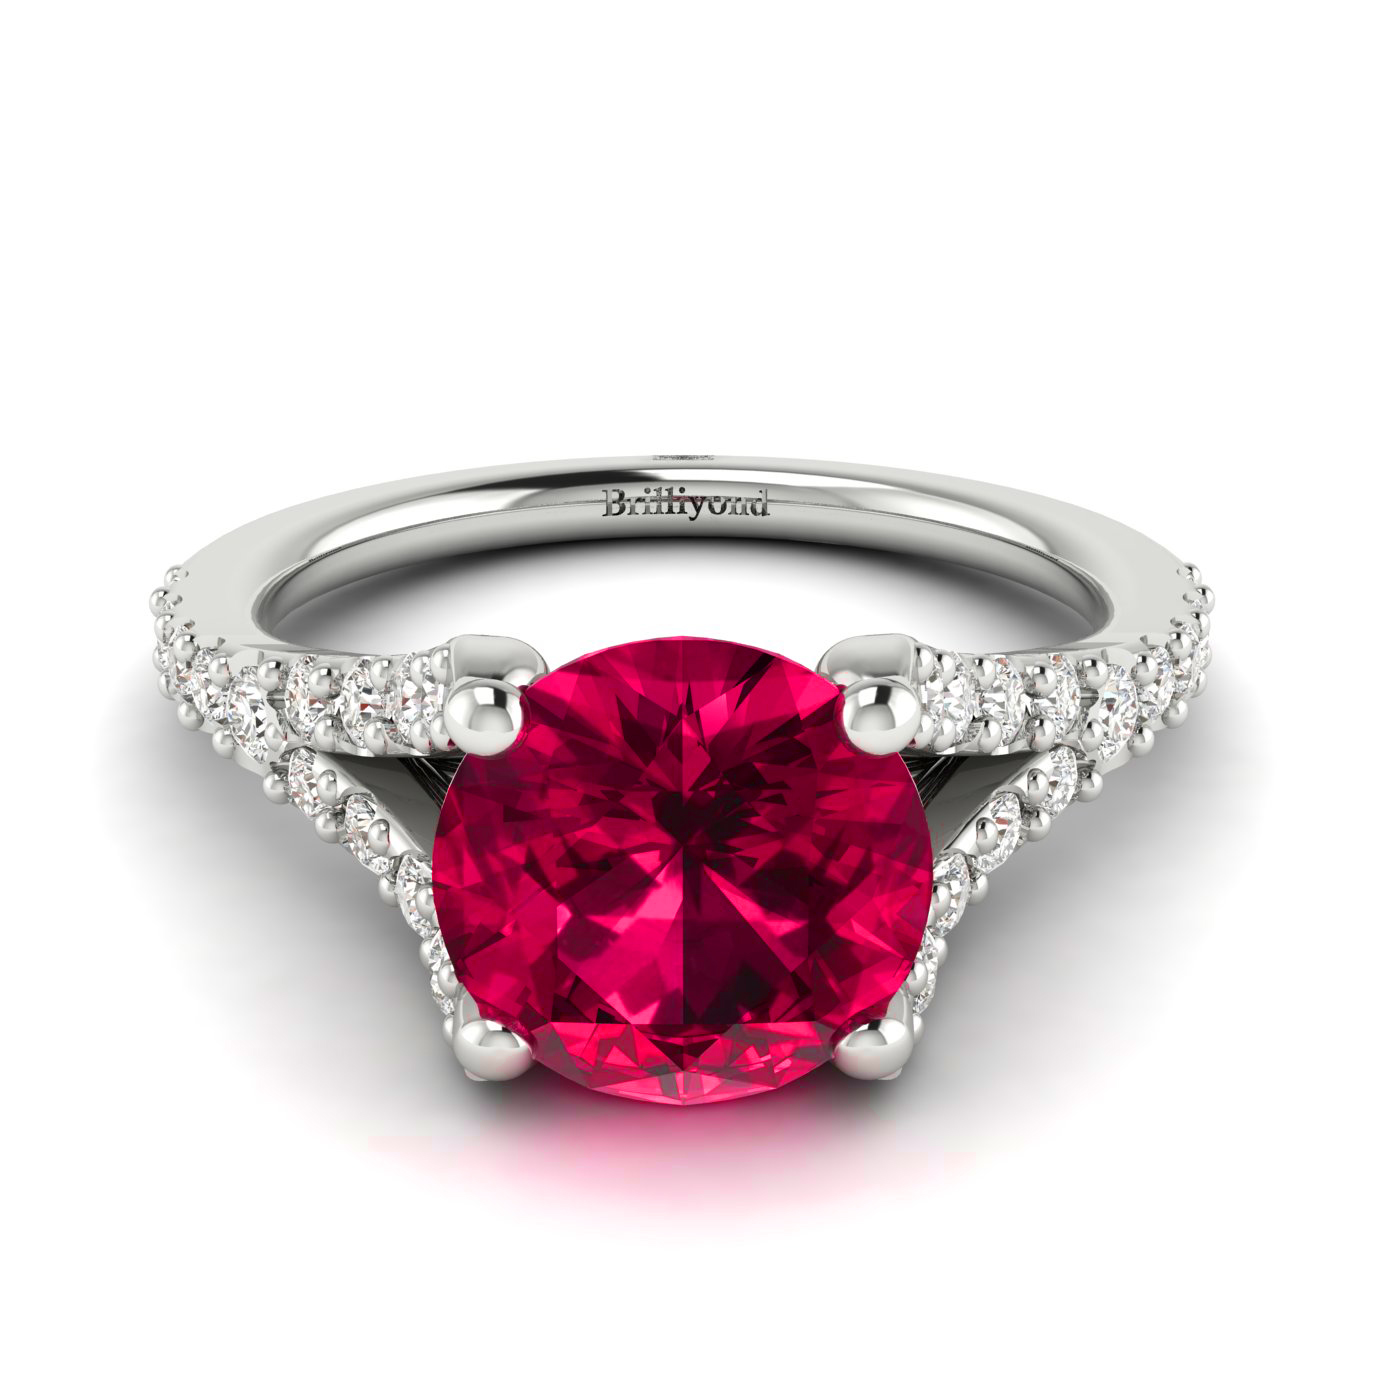 Close-up view of the 6.5mm Red Ruby with Diamond Paves